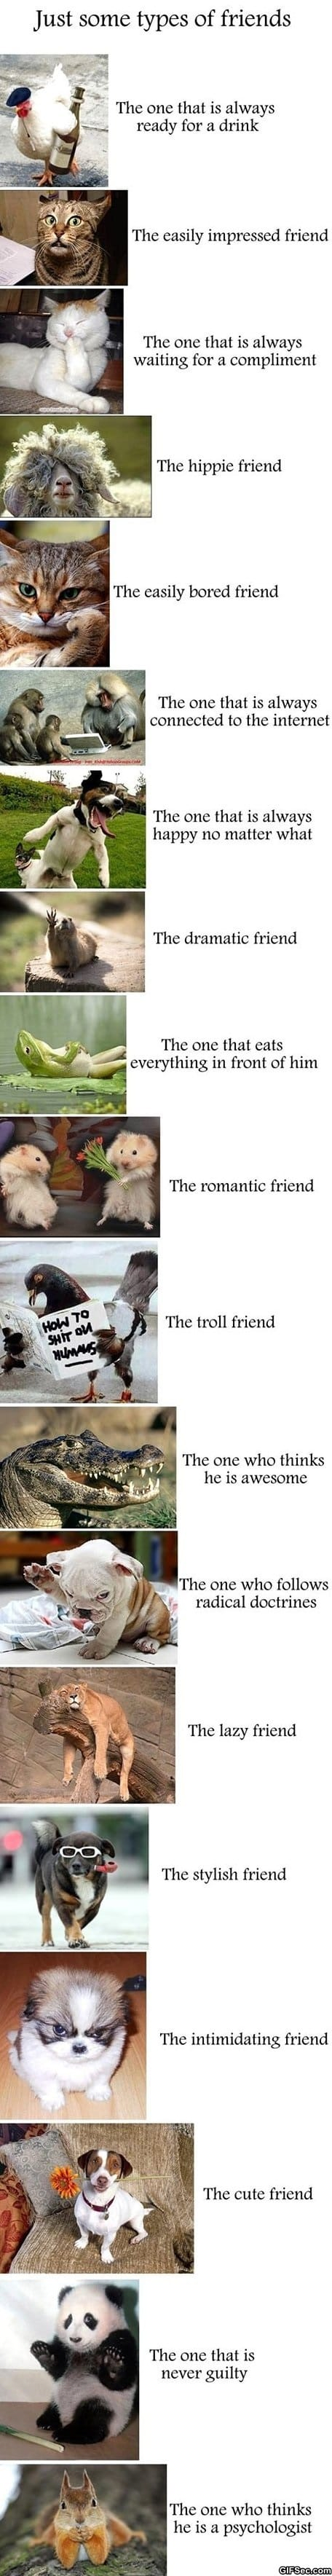 funny-some-types-of-friends